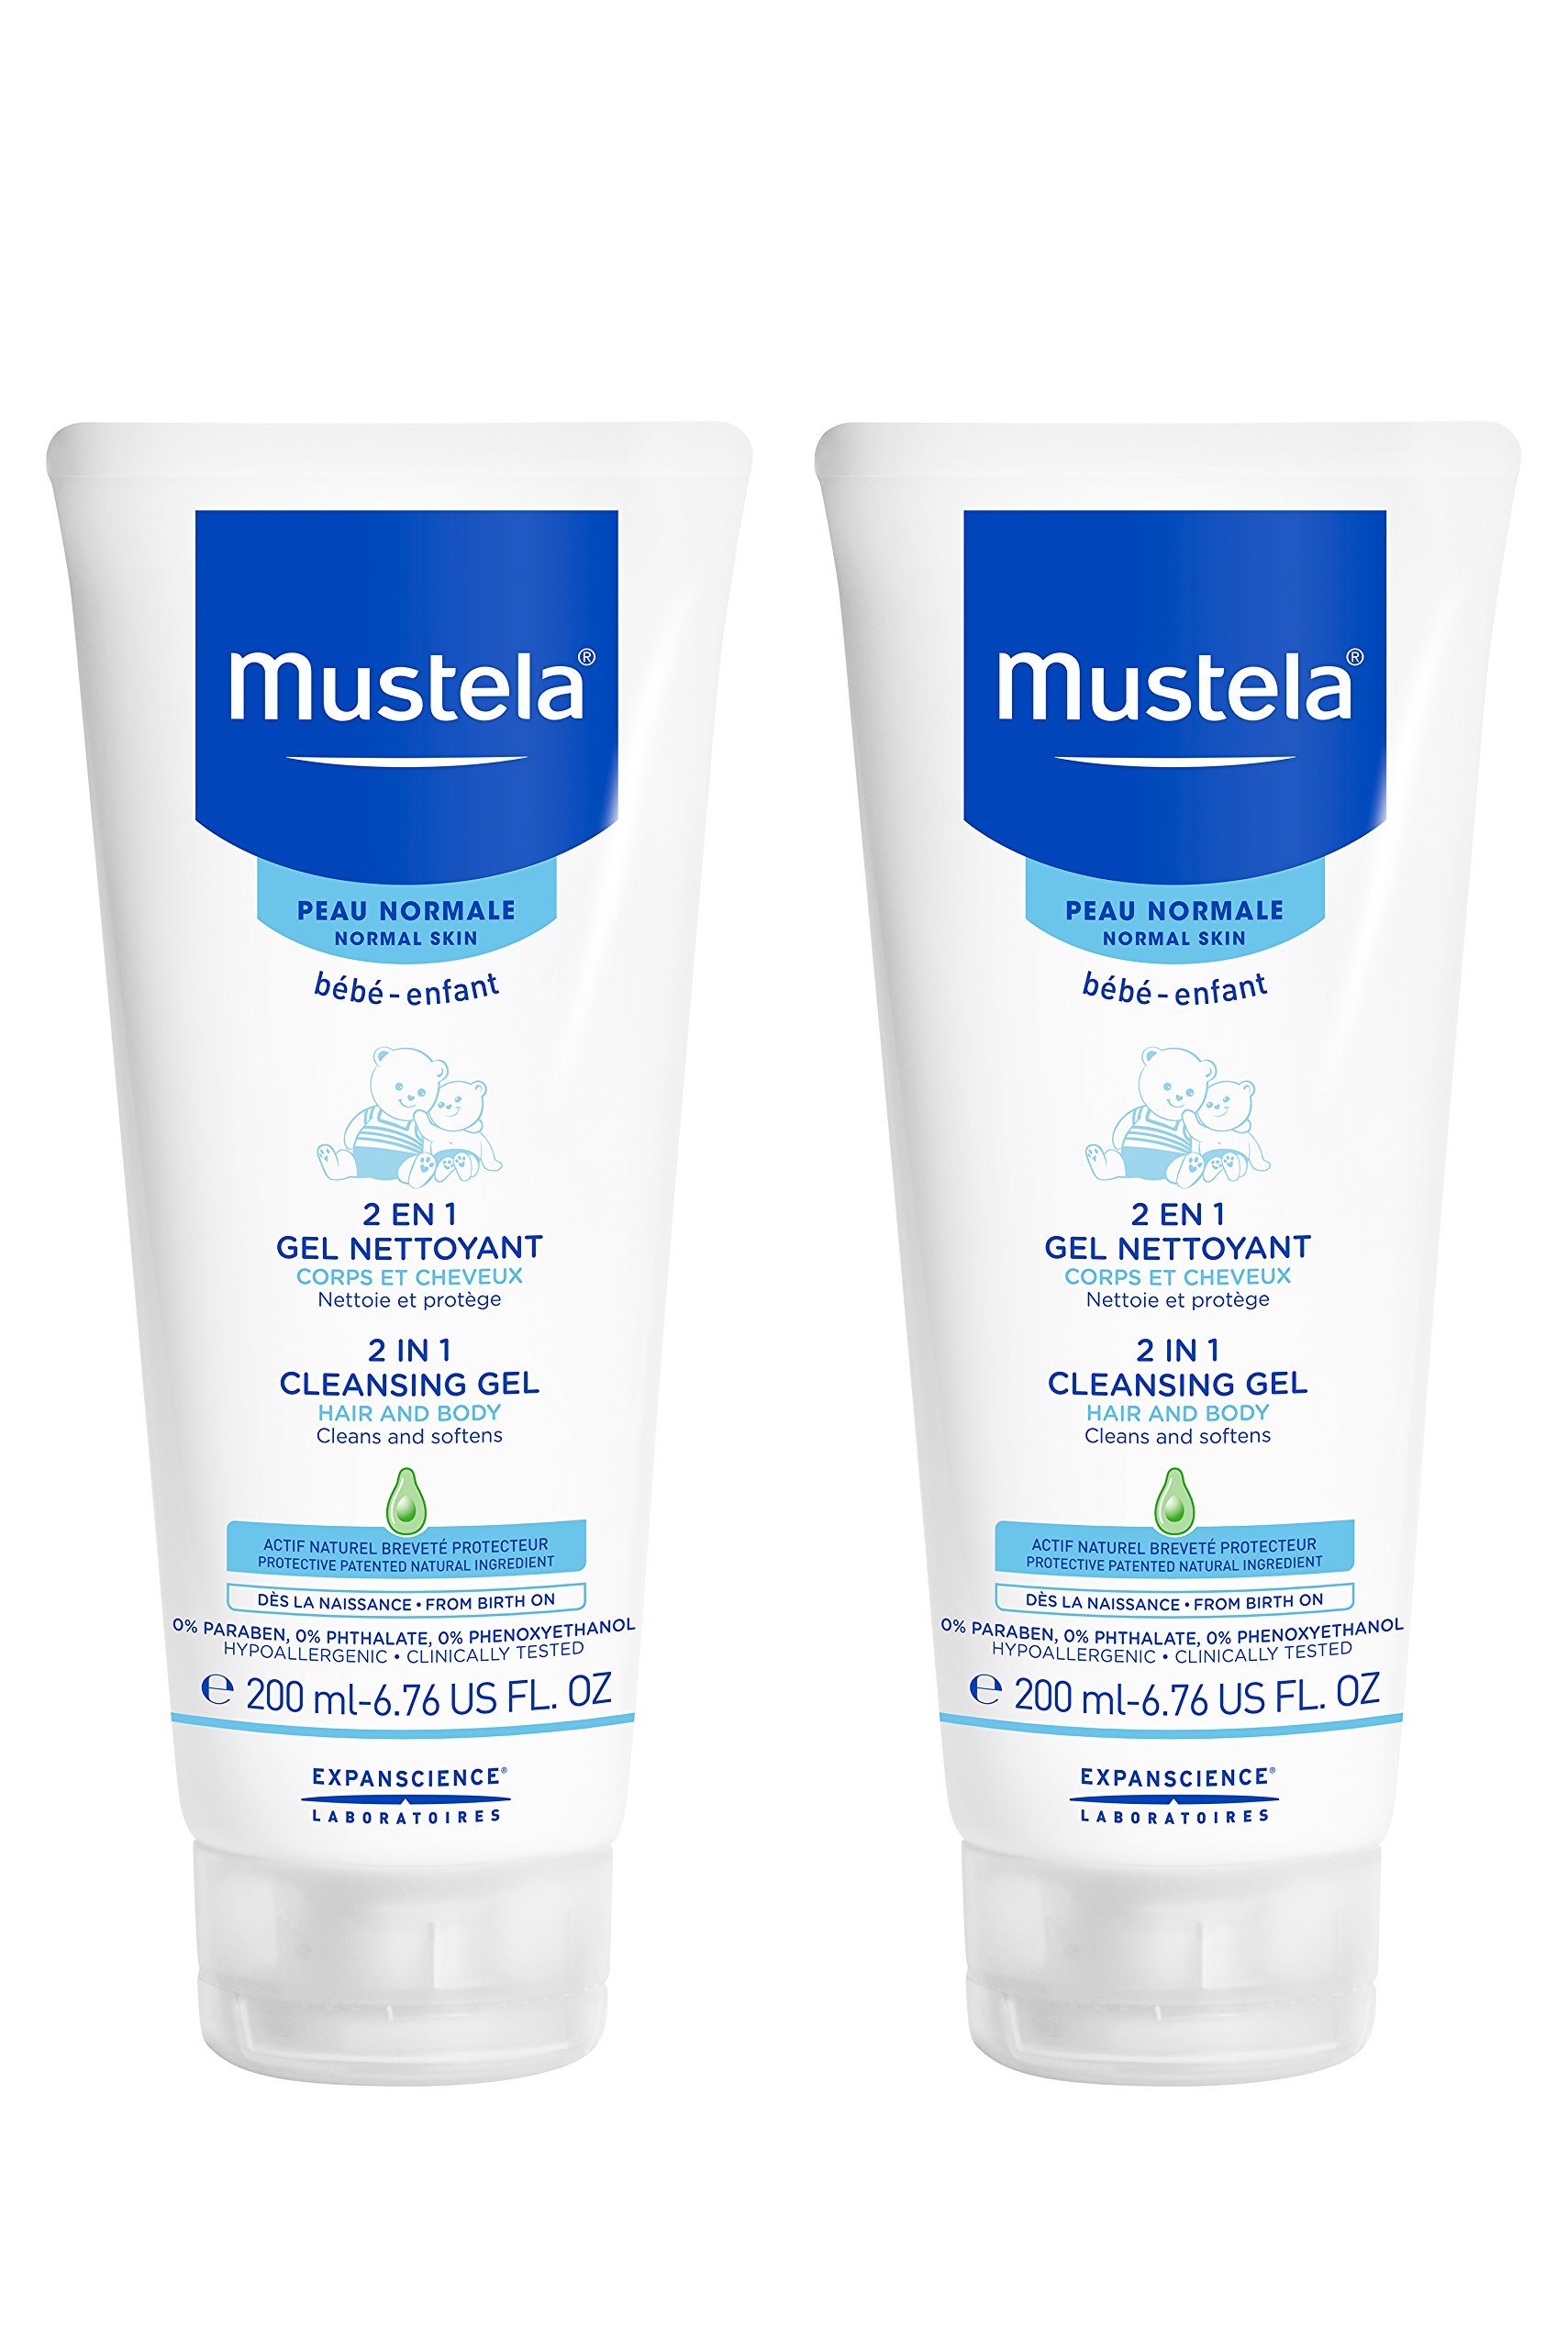 Mustela 2 in 1 Cleansing Gel, Baby Shampoo and Body Wash, Tear-Free, with Natural Avocado Perseose, 2-Pack by Mustela